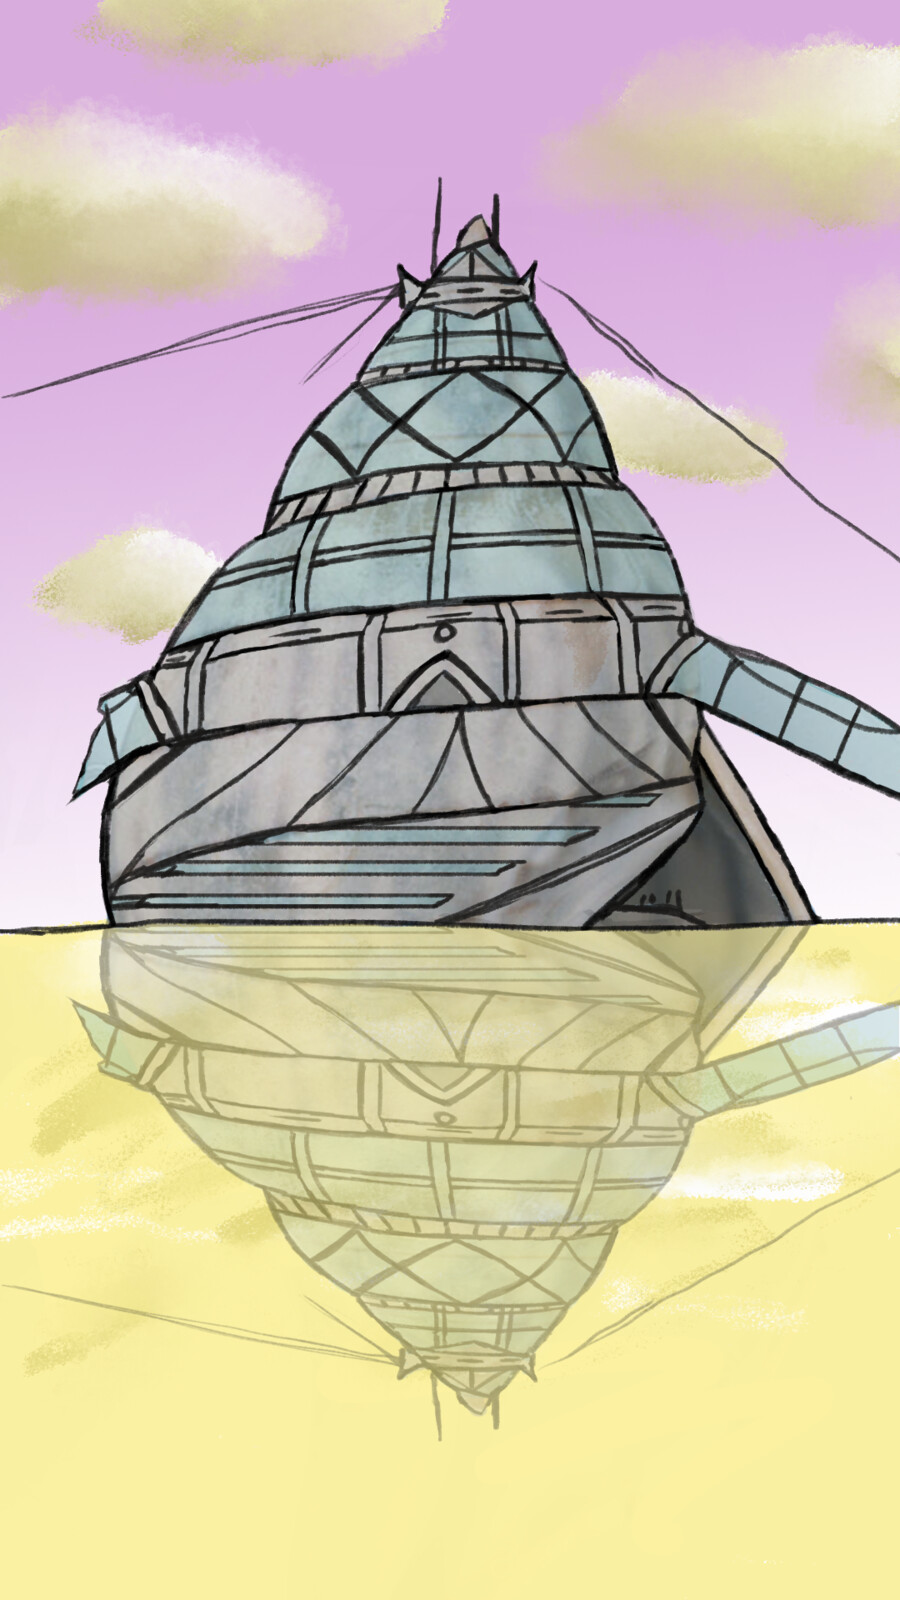 A sketch of my shell shaped hero building towering out of the water.